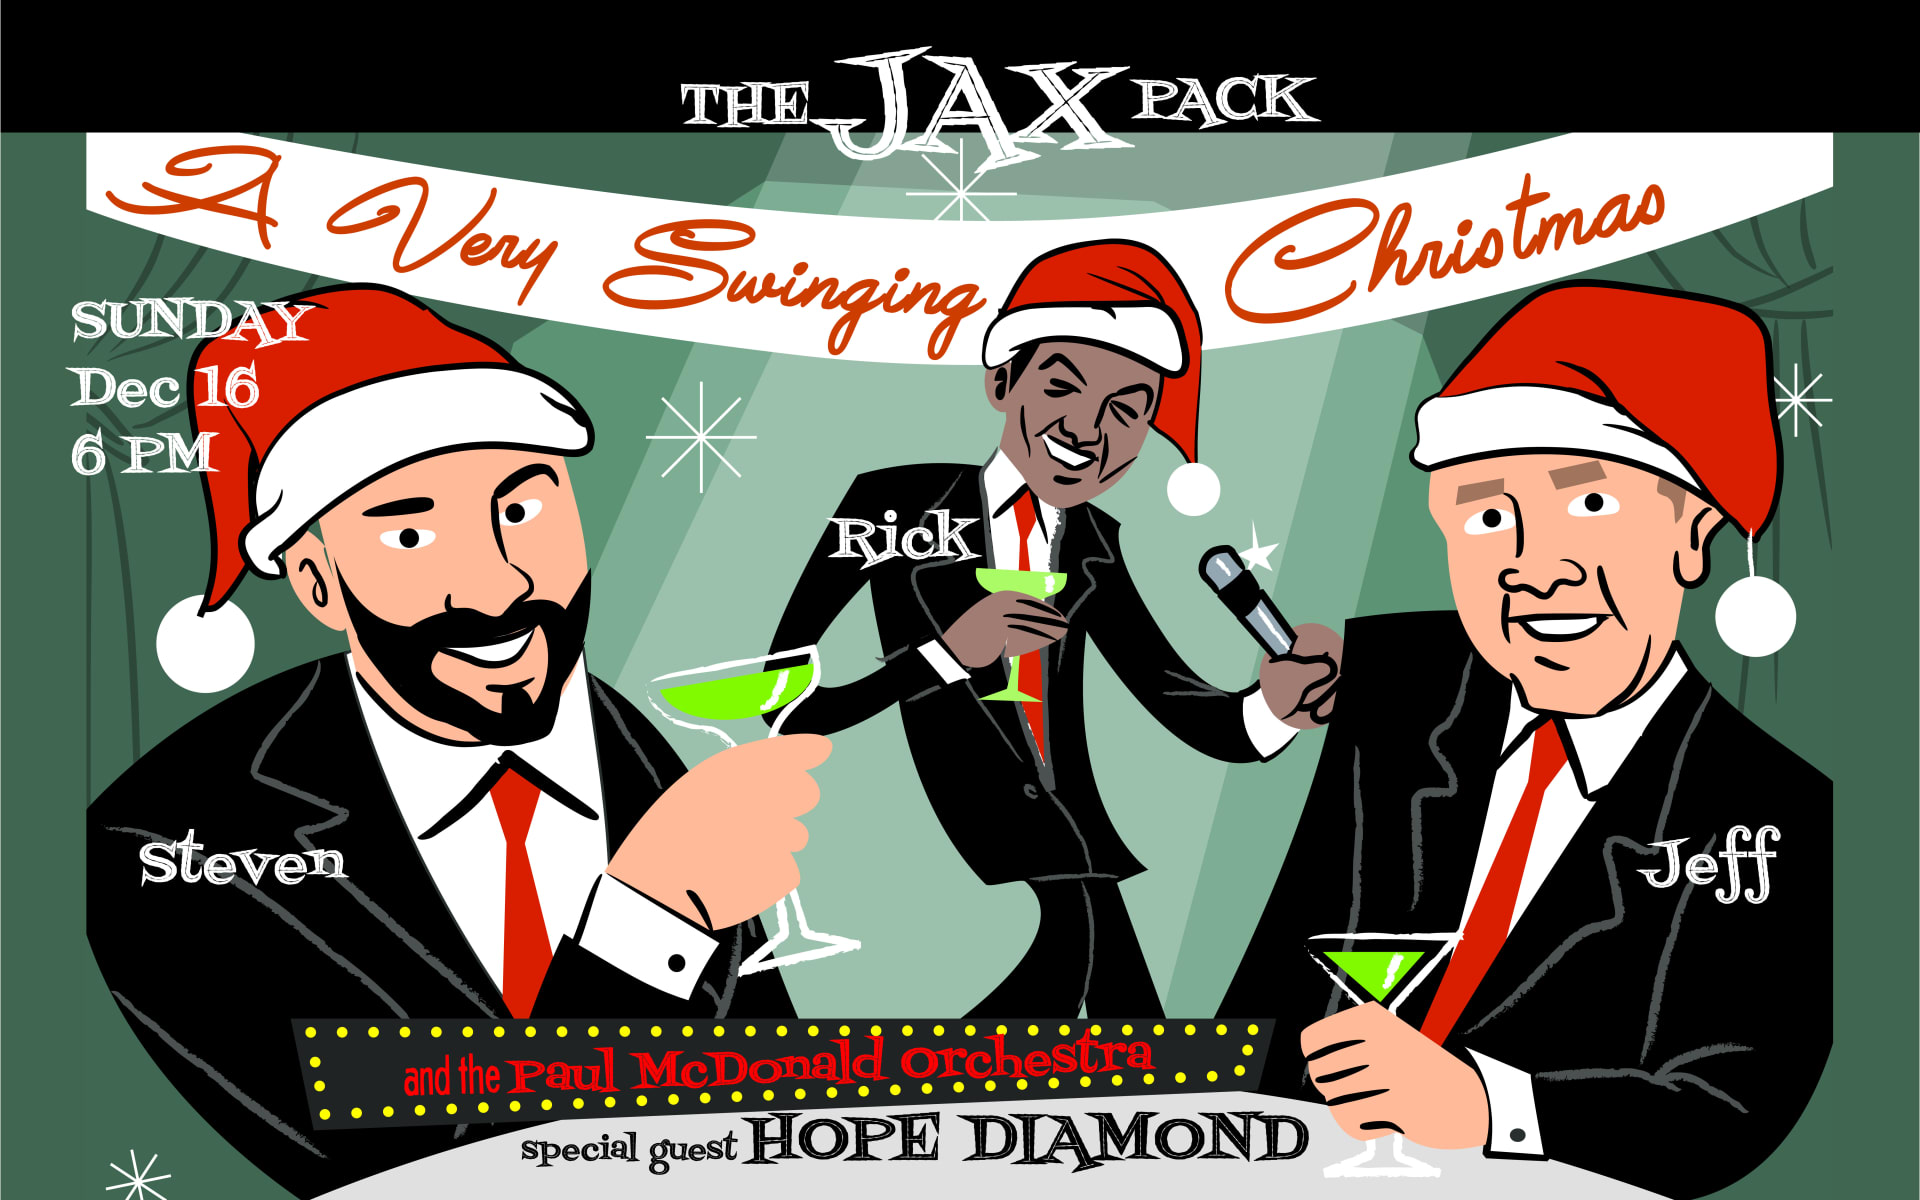 December 16 | A VERY SWINGING CHRISTMAS with THE JAX PACK